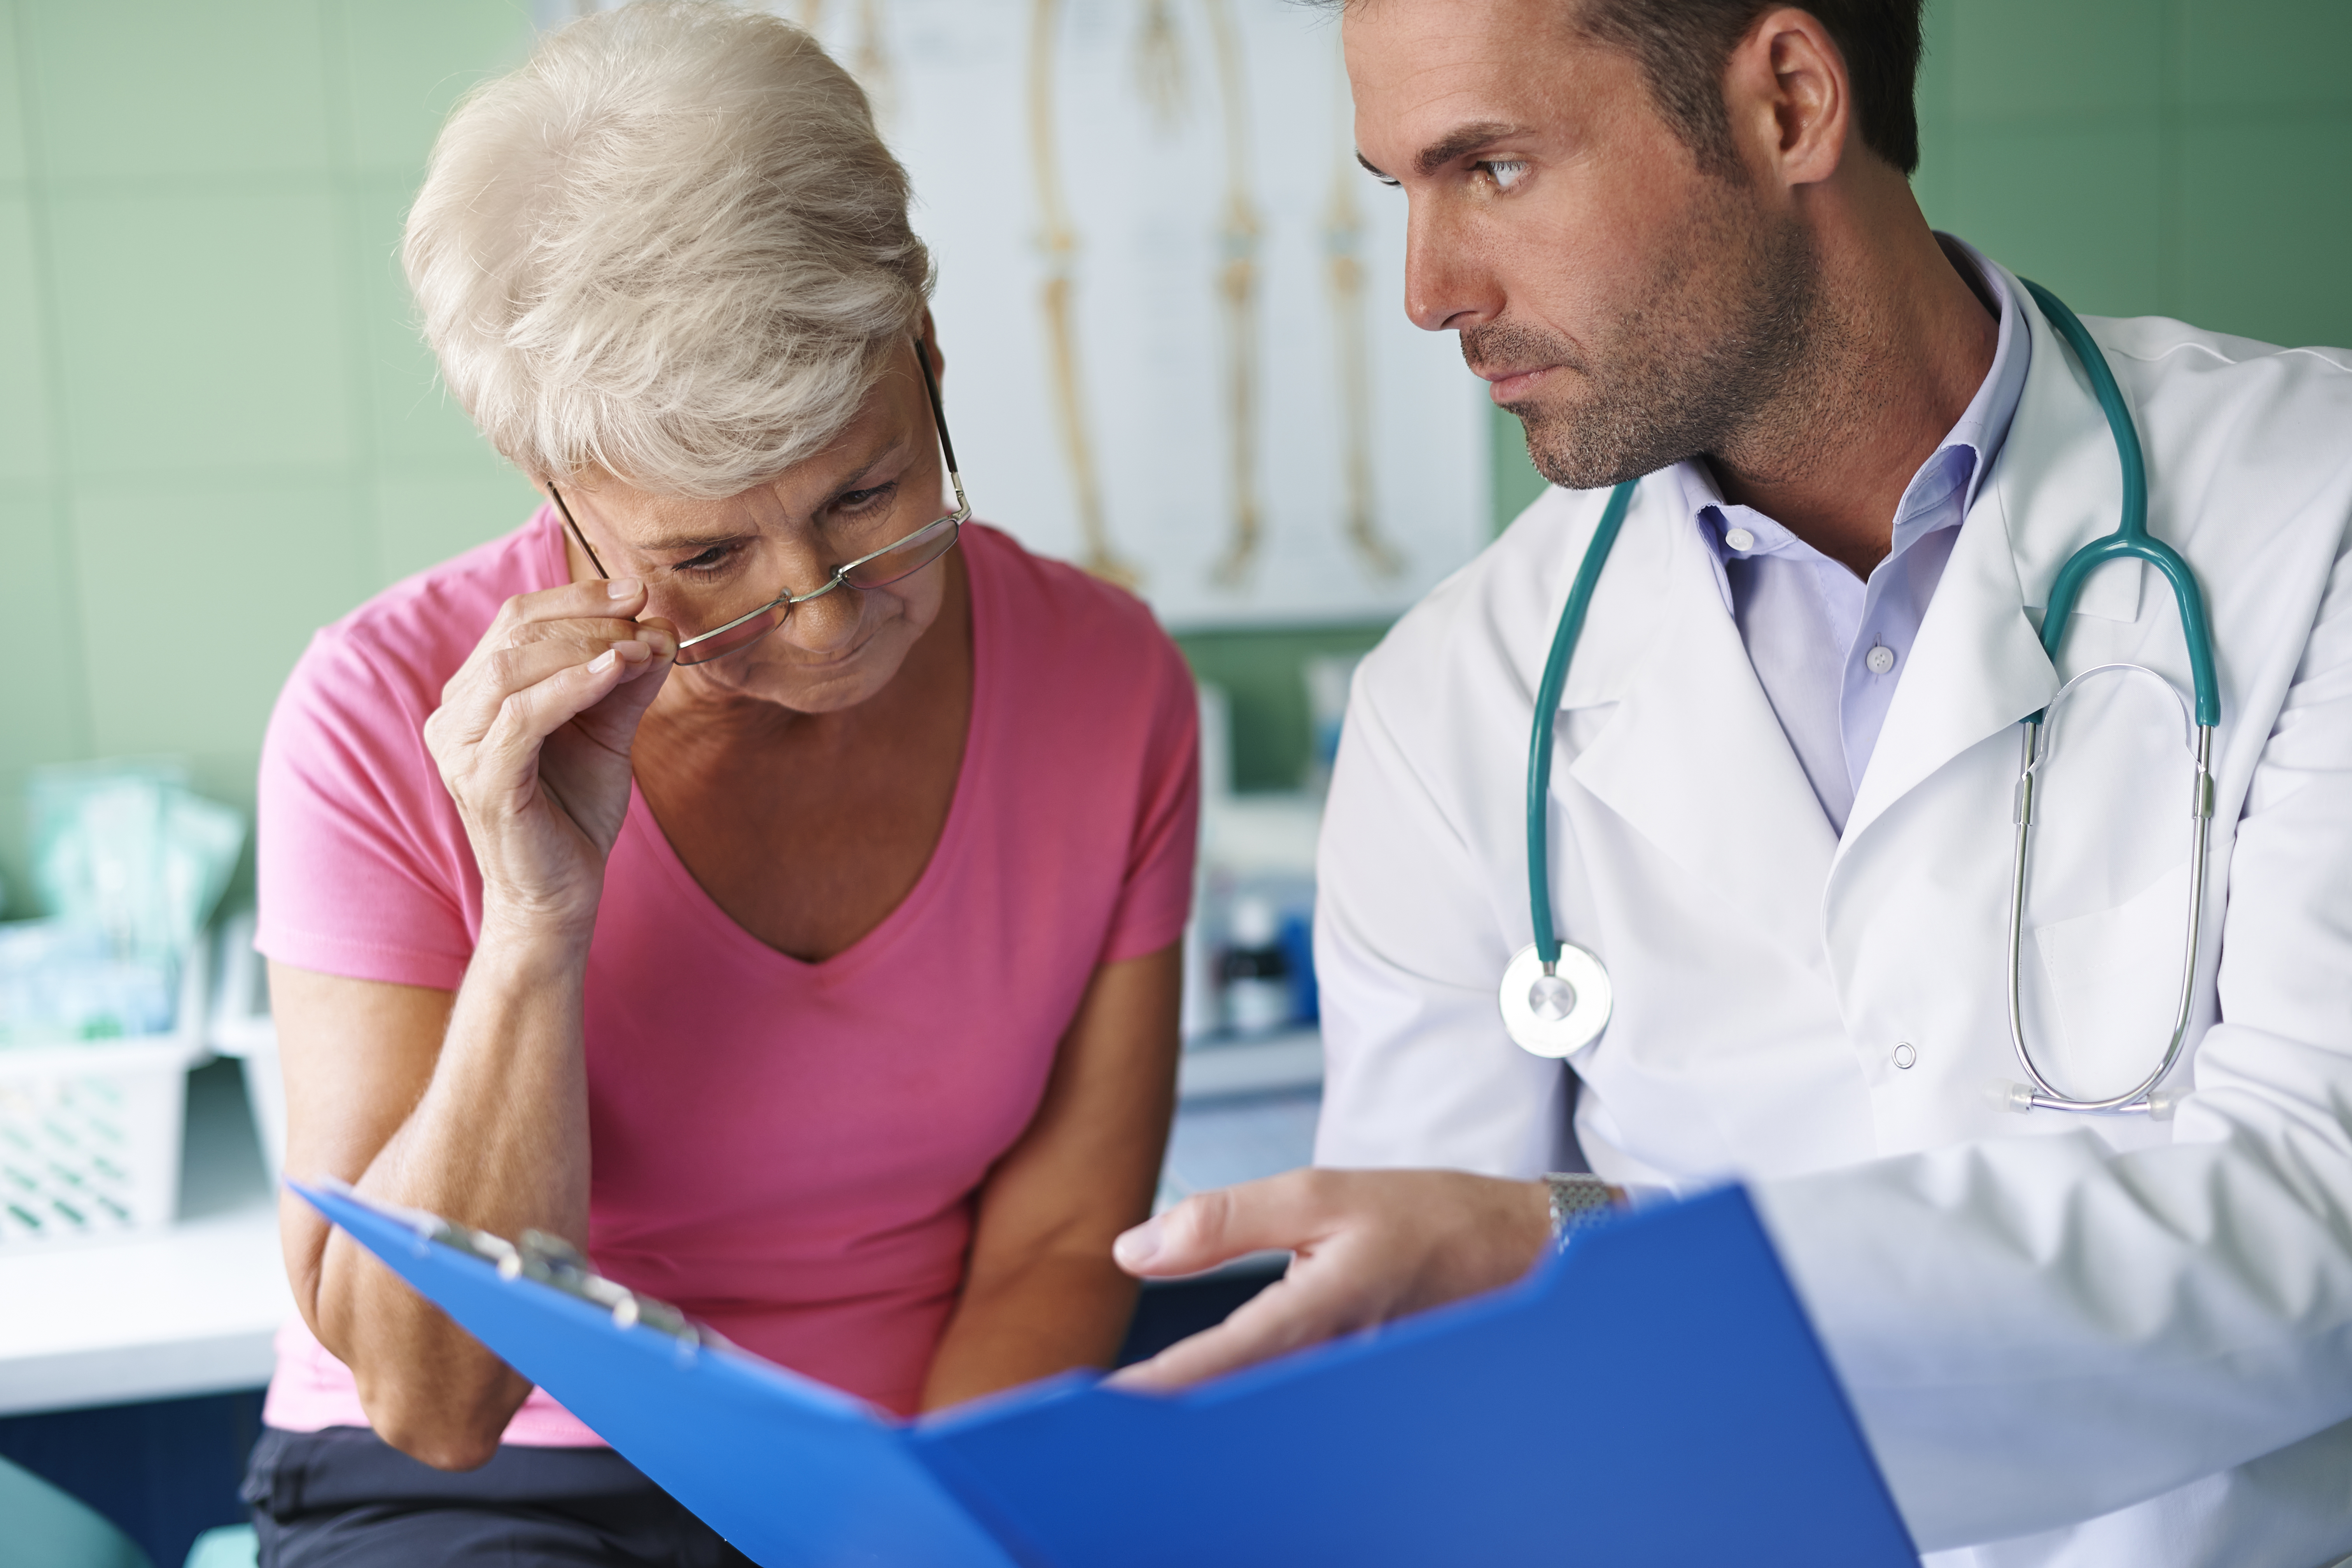 Dr. showing medical records to senior female patient